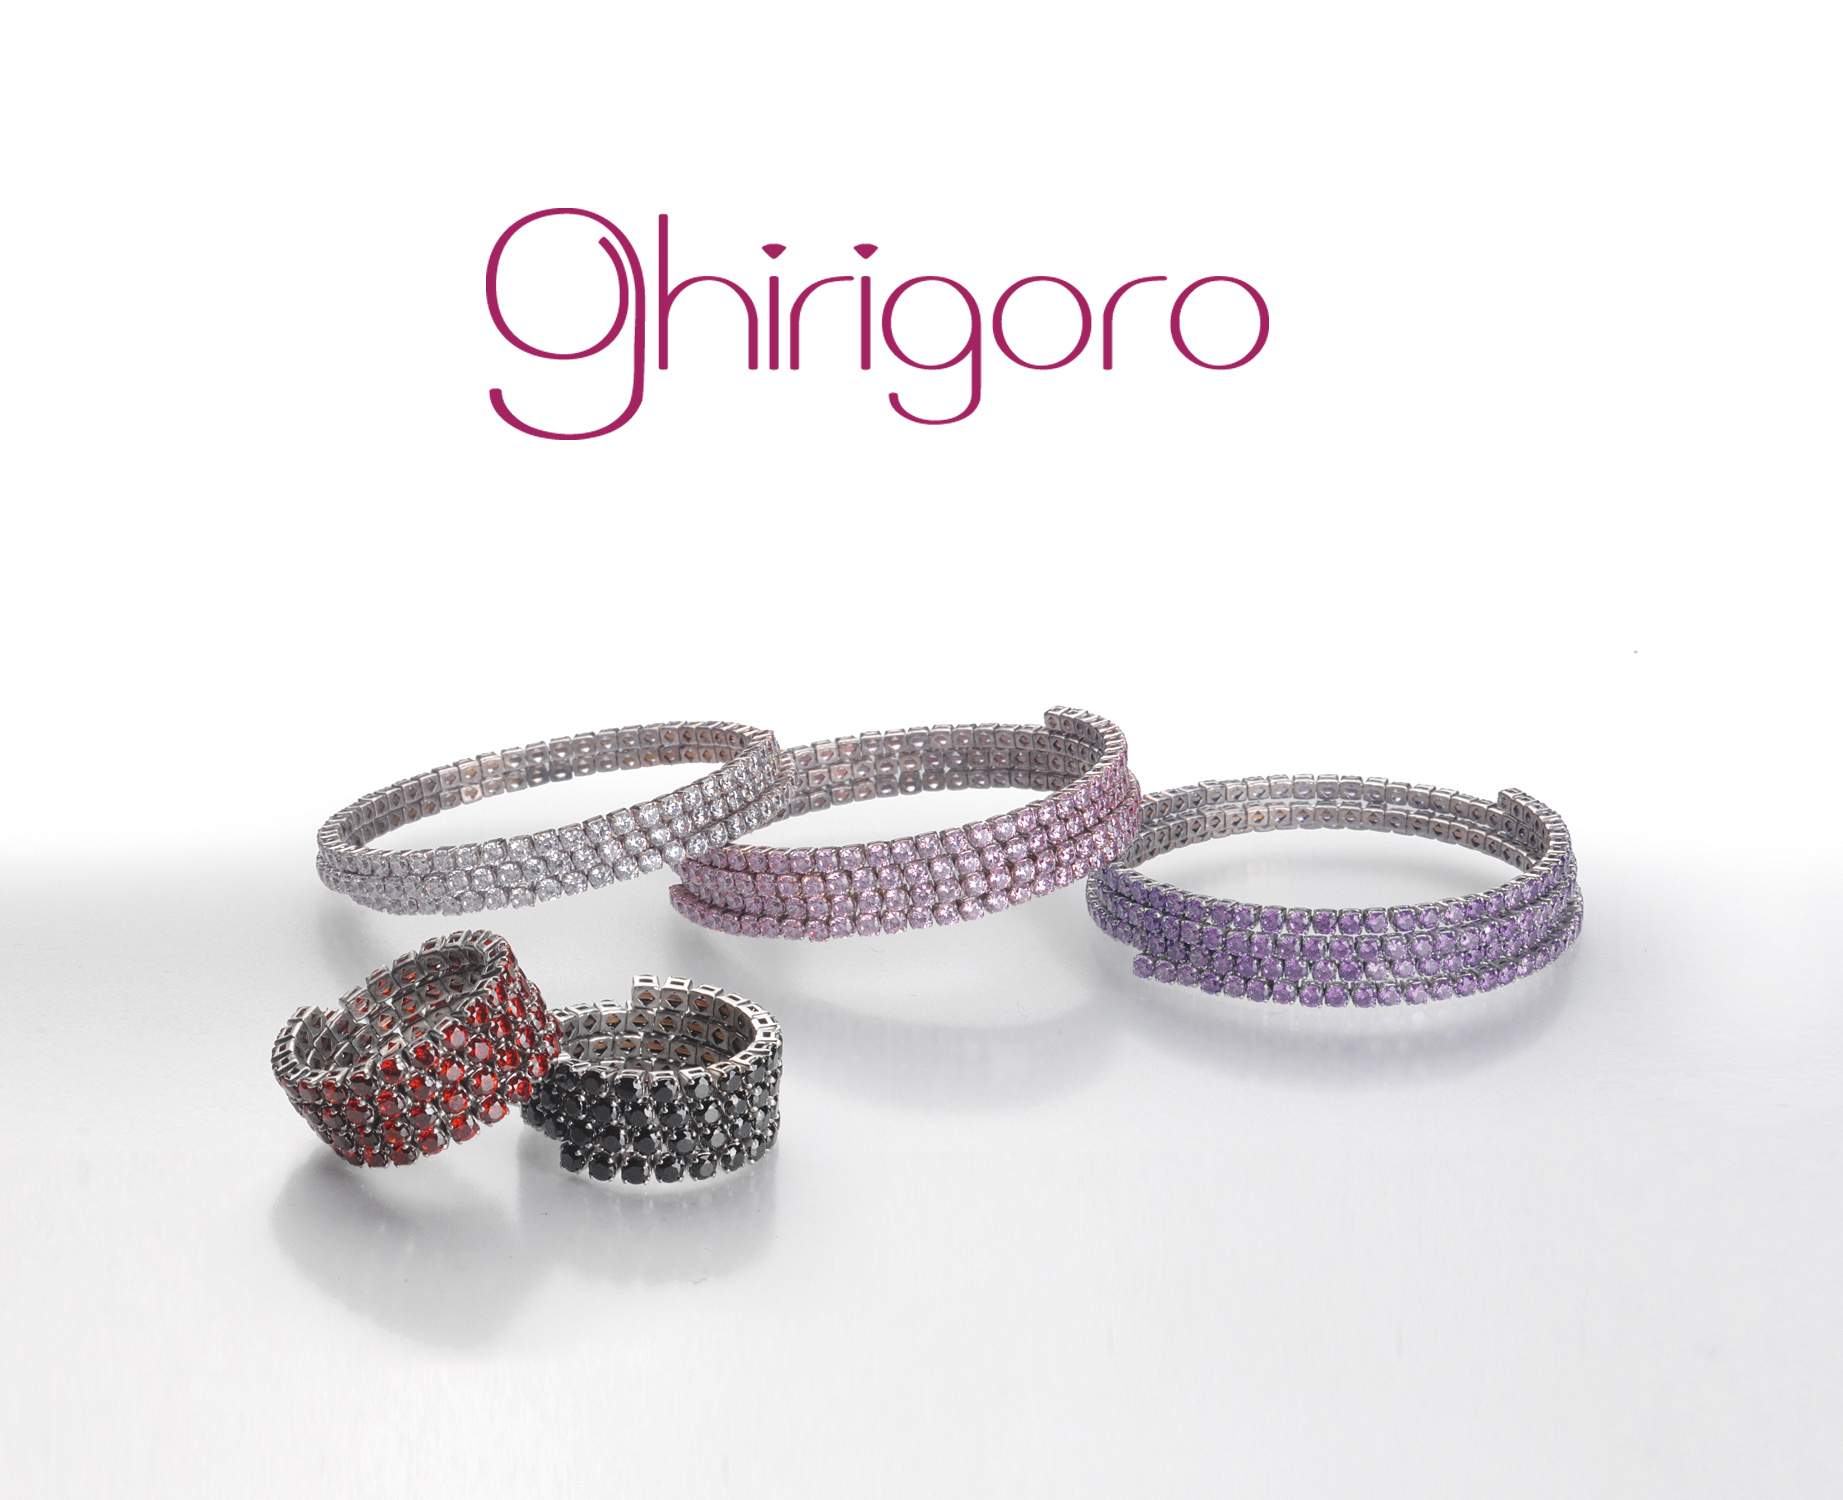 ghirigoro - A new concept of bracelets and rings -